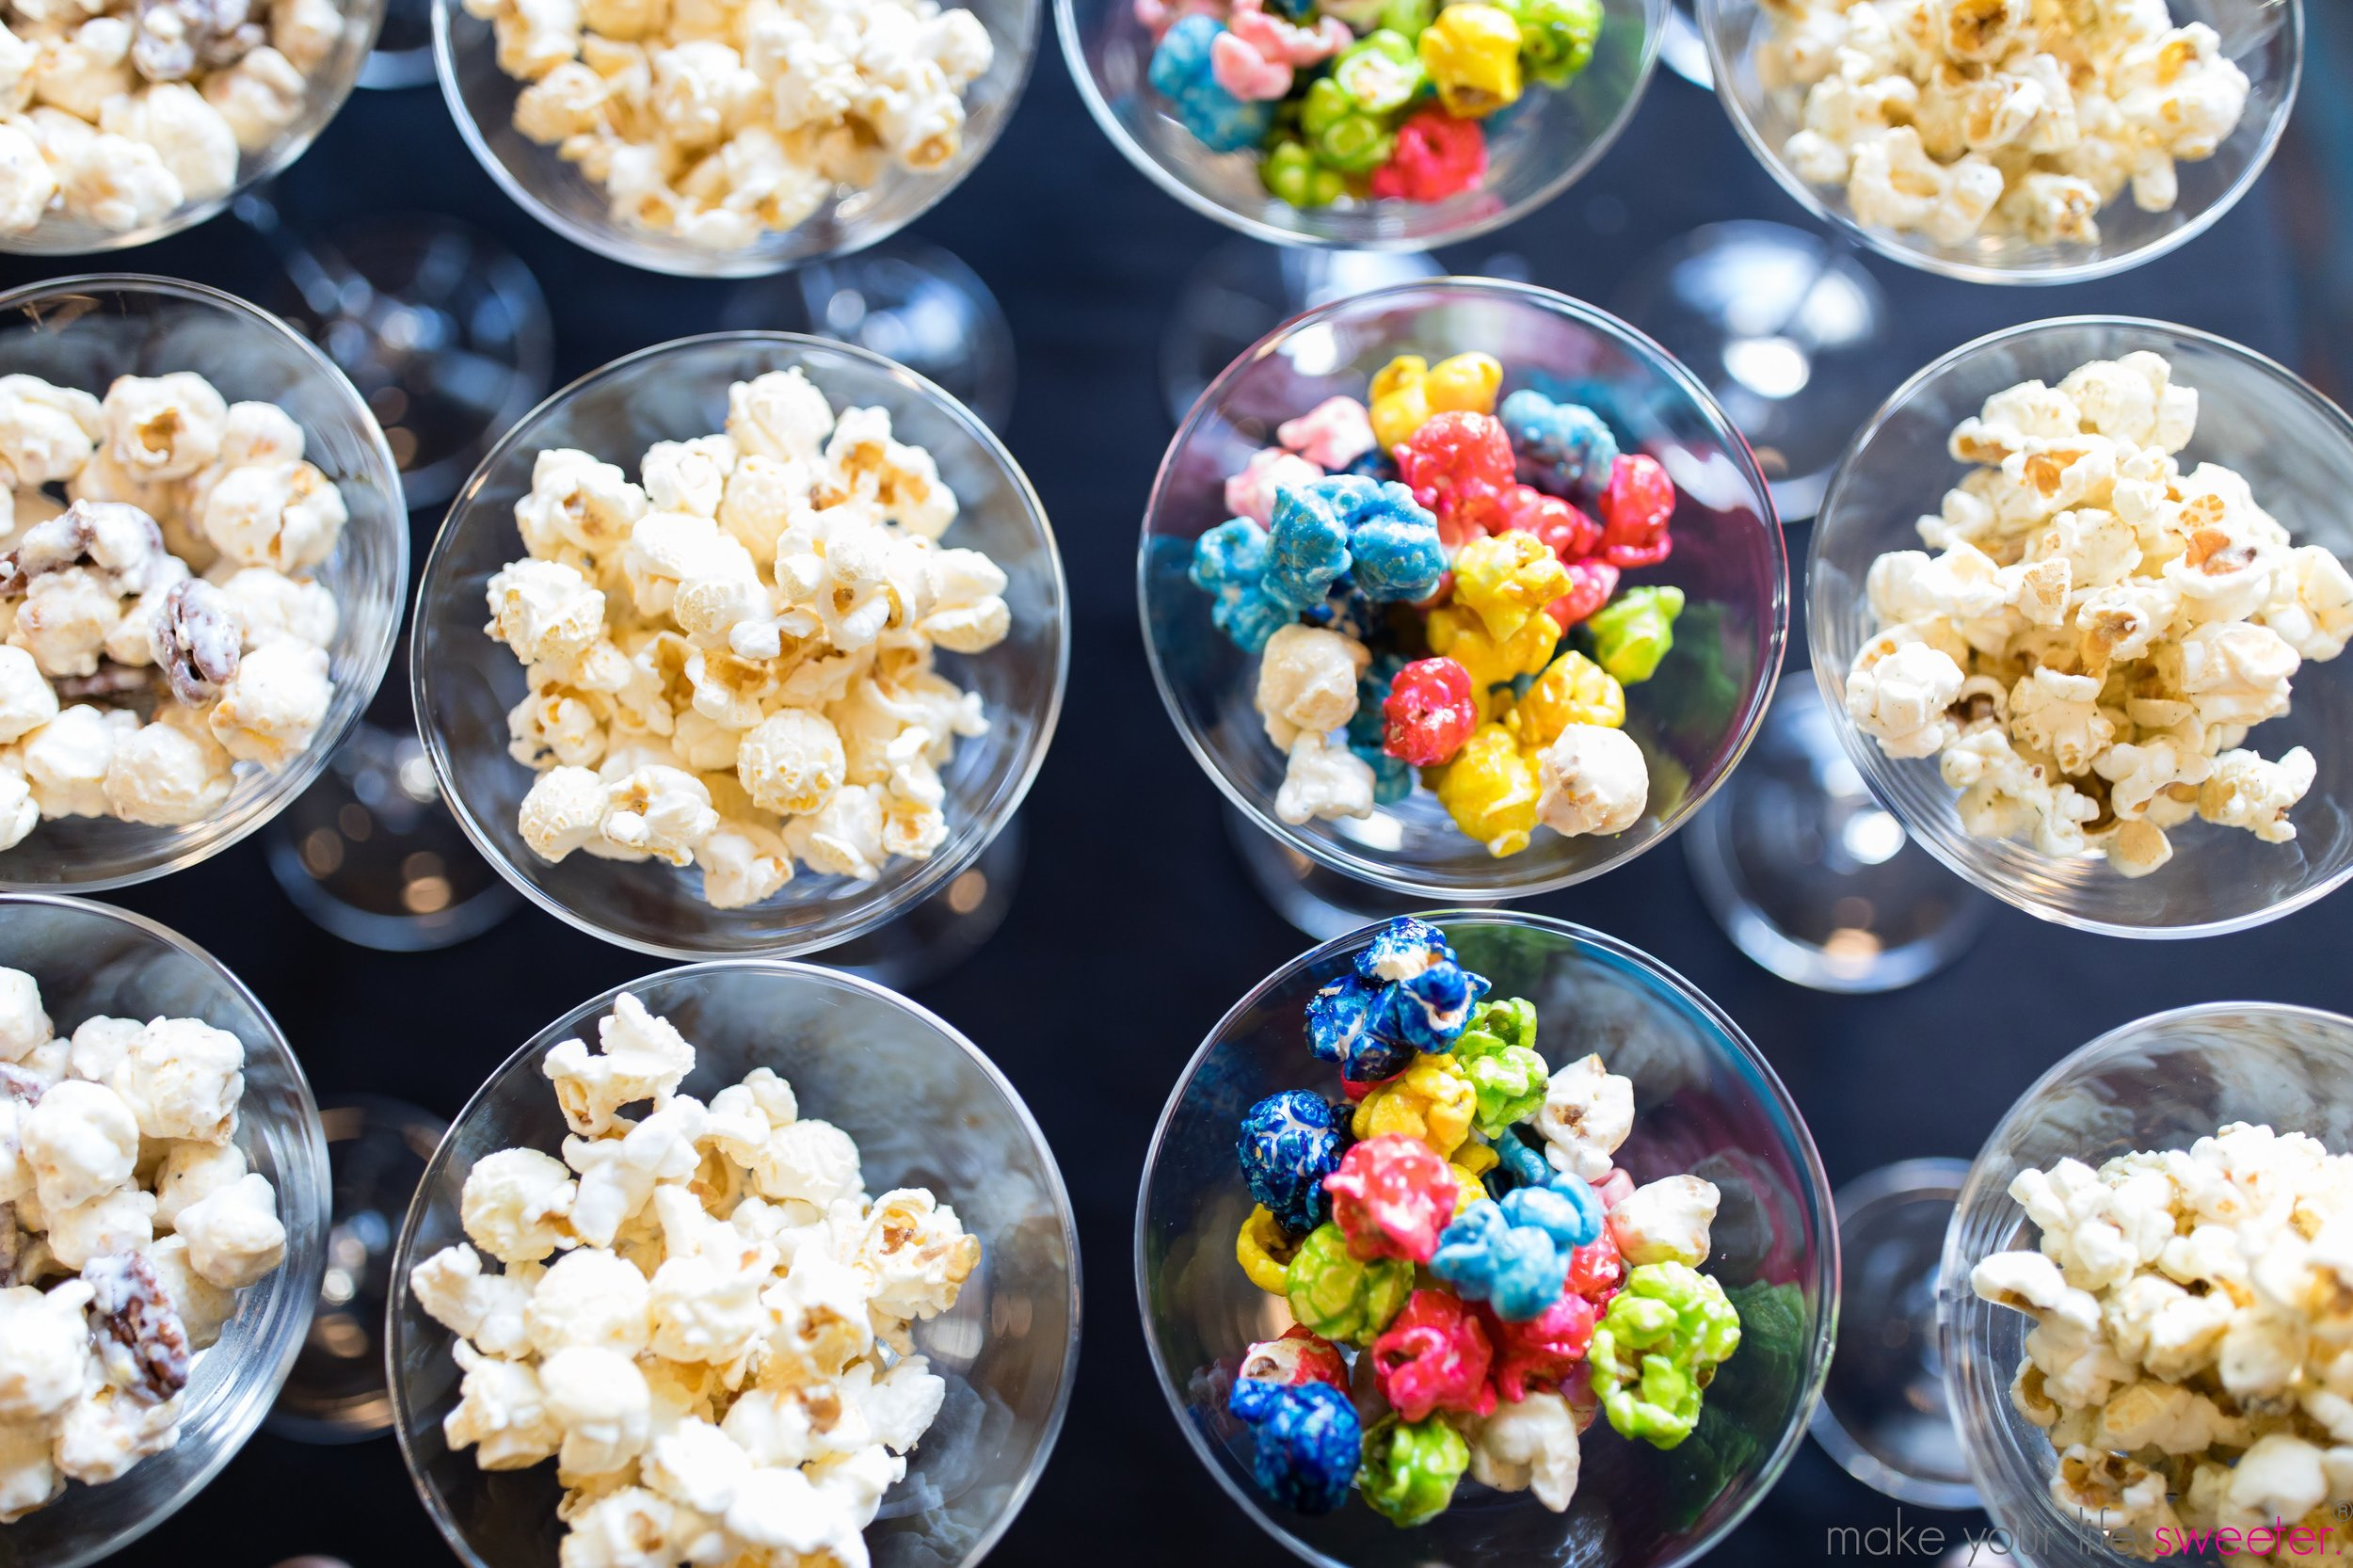 HotPoppin Gourmet Popcorn: Make Your Life Sweeter Events - The Knot Annapolis